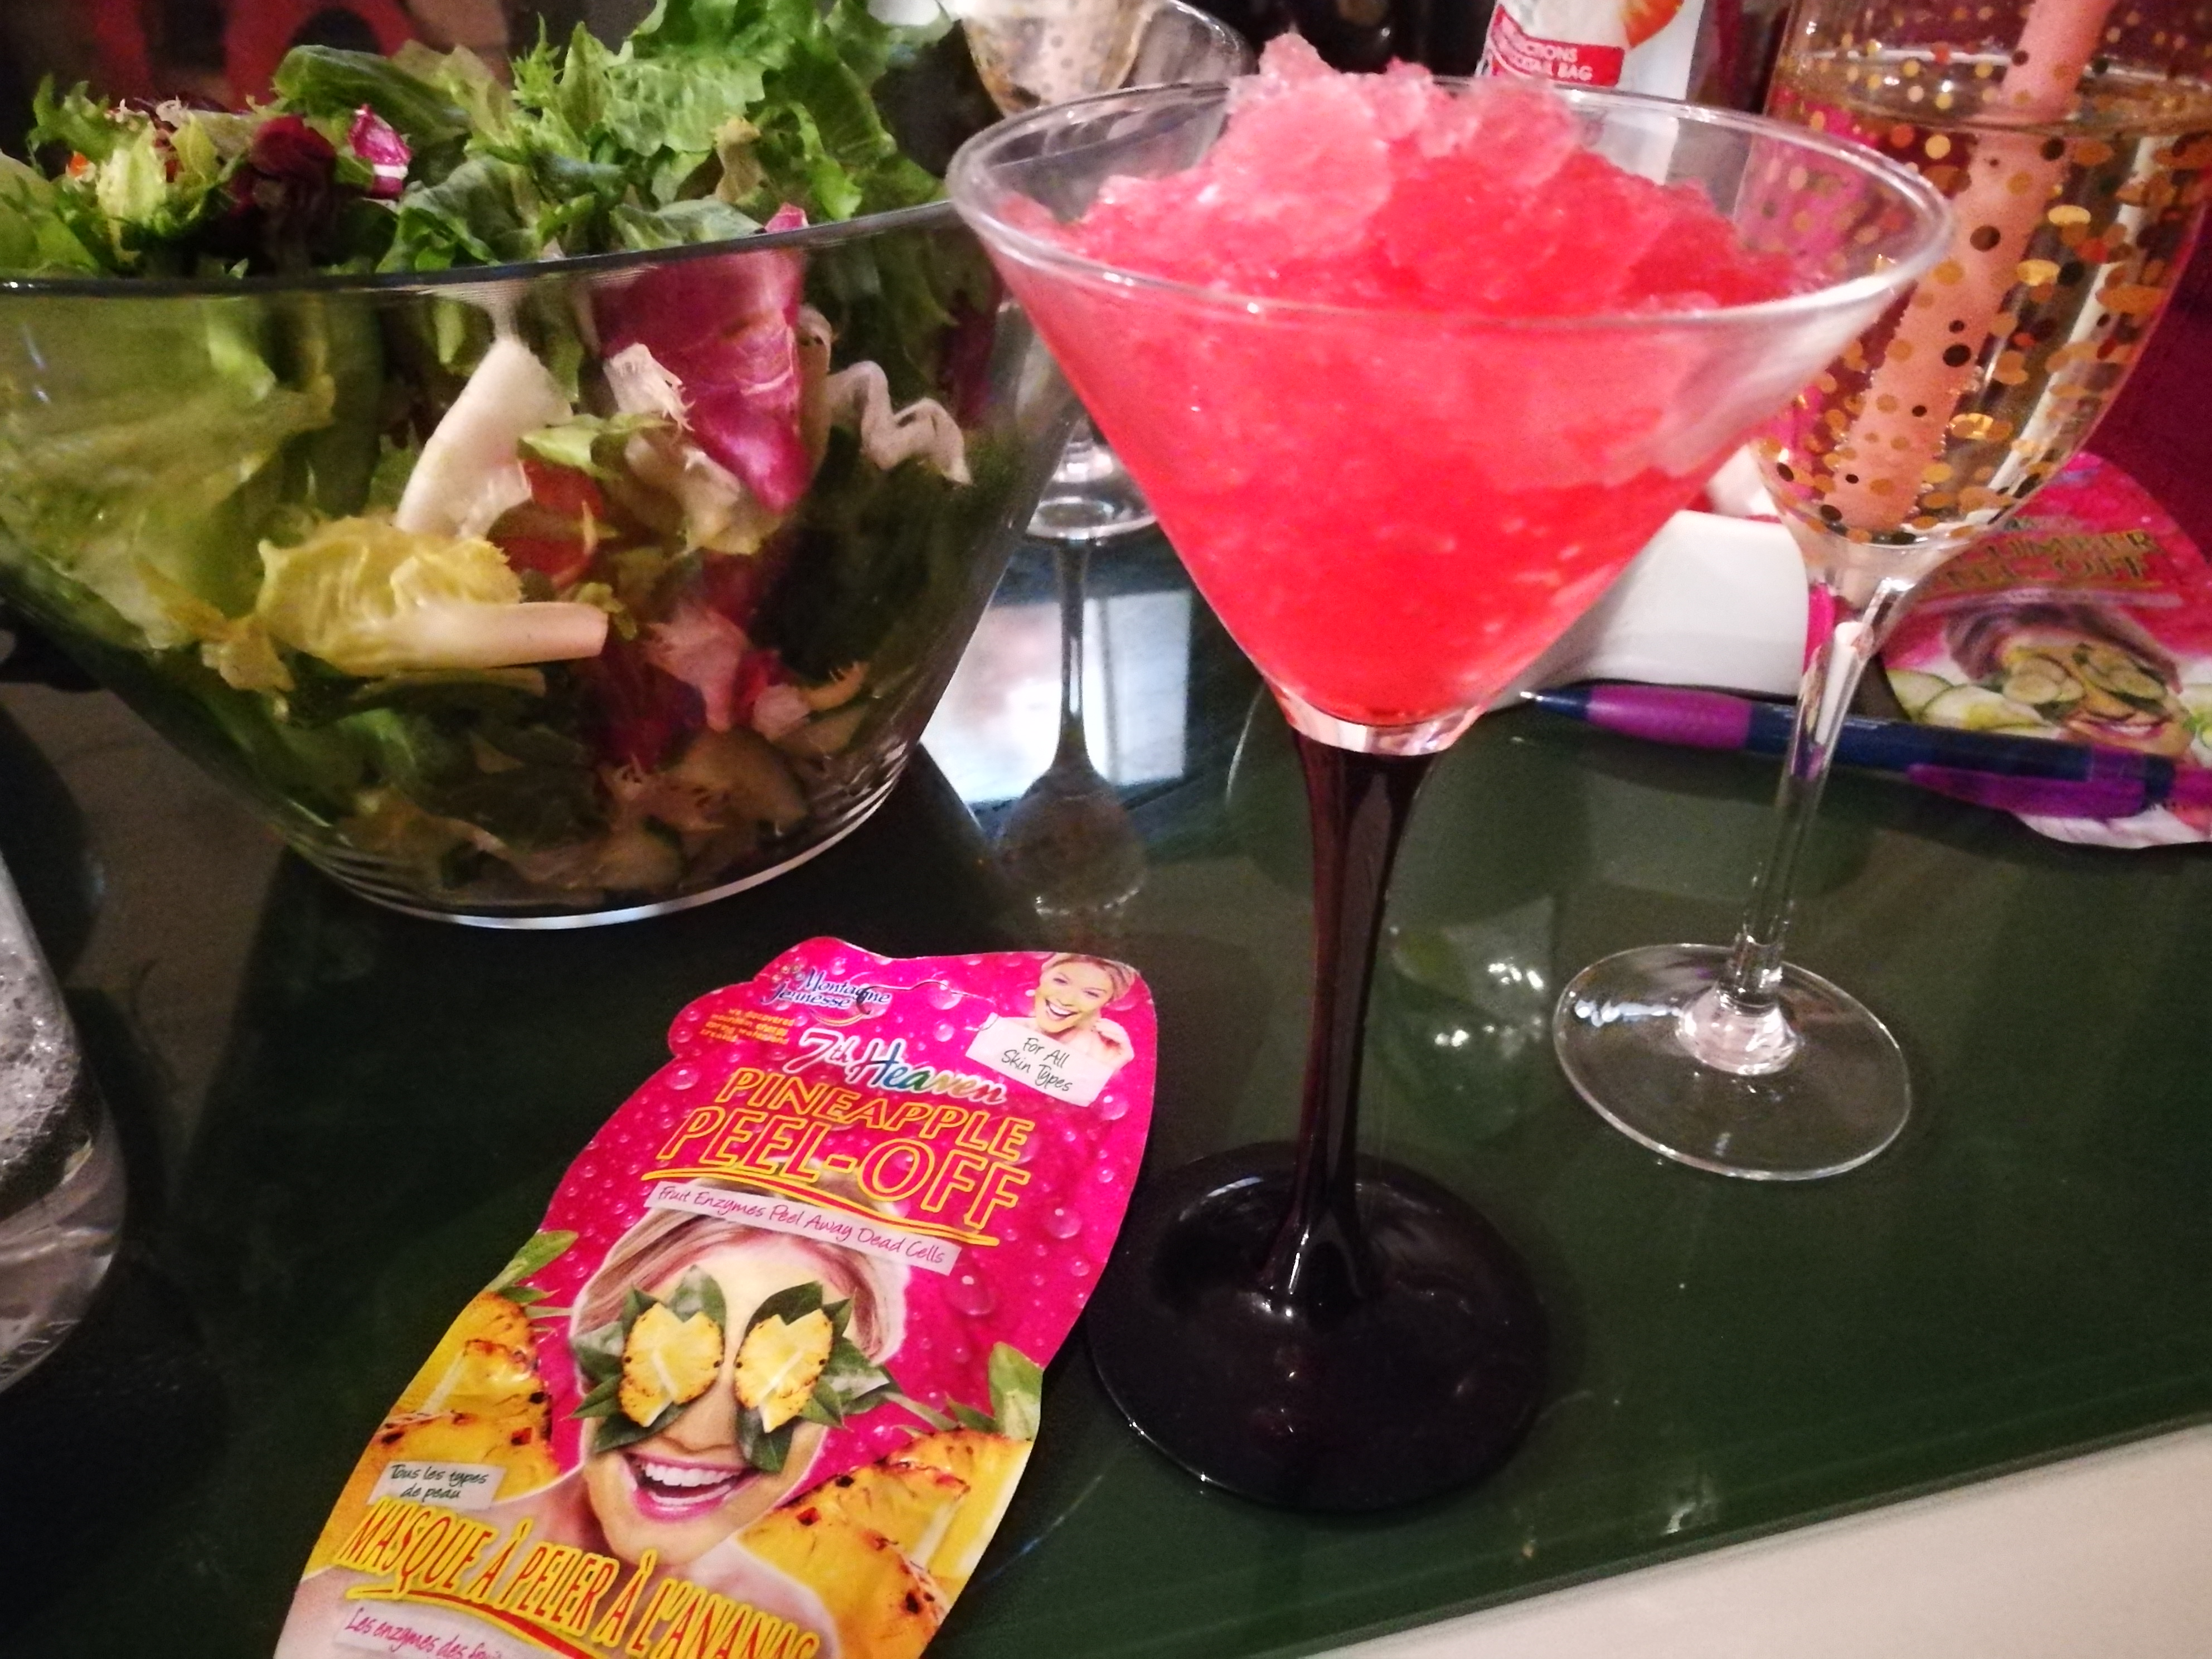 Slumber party, cocktails and face masks